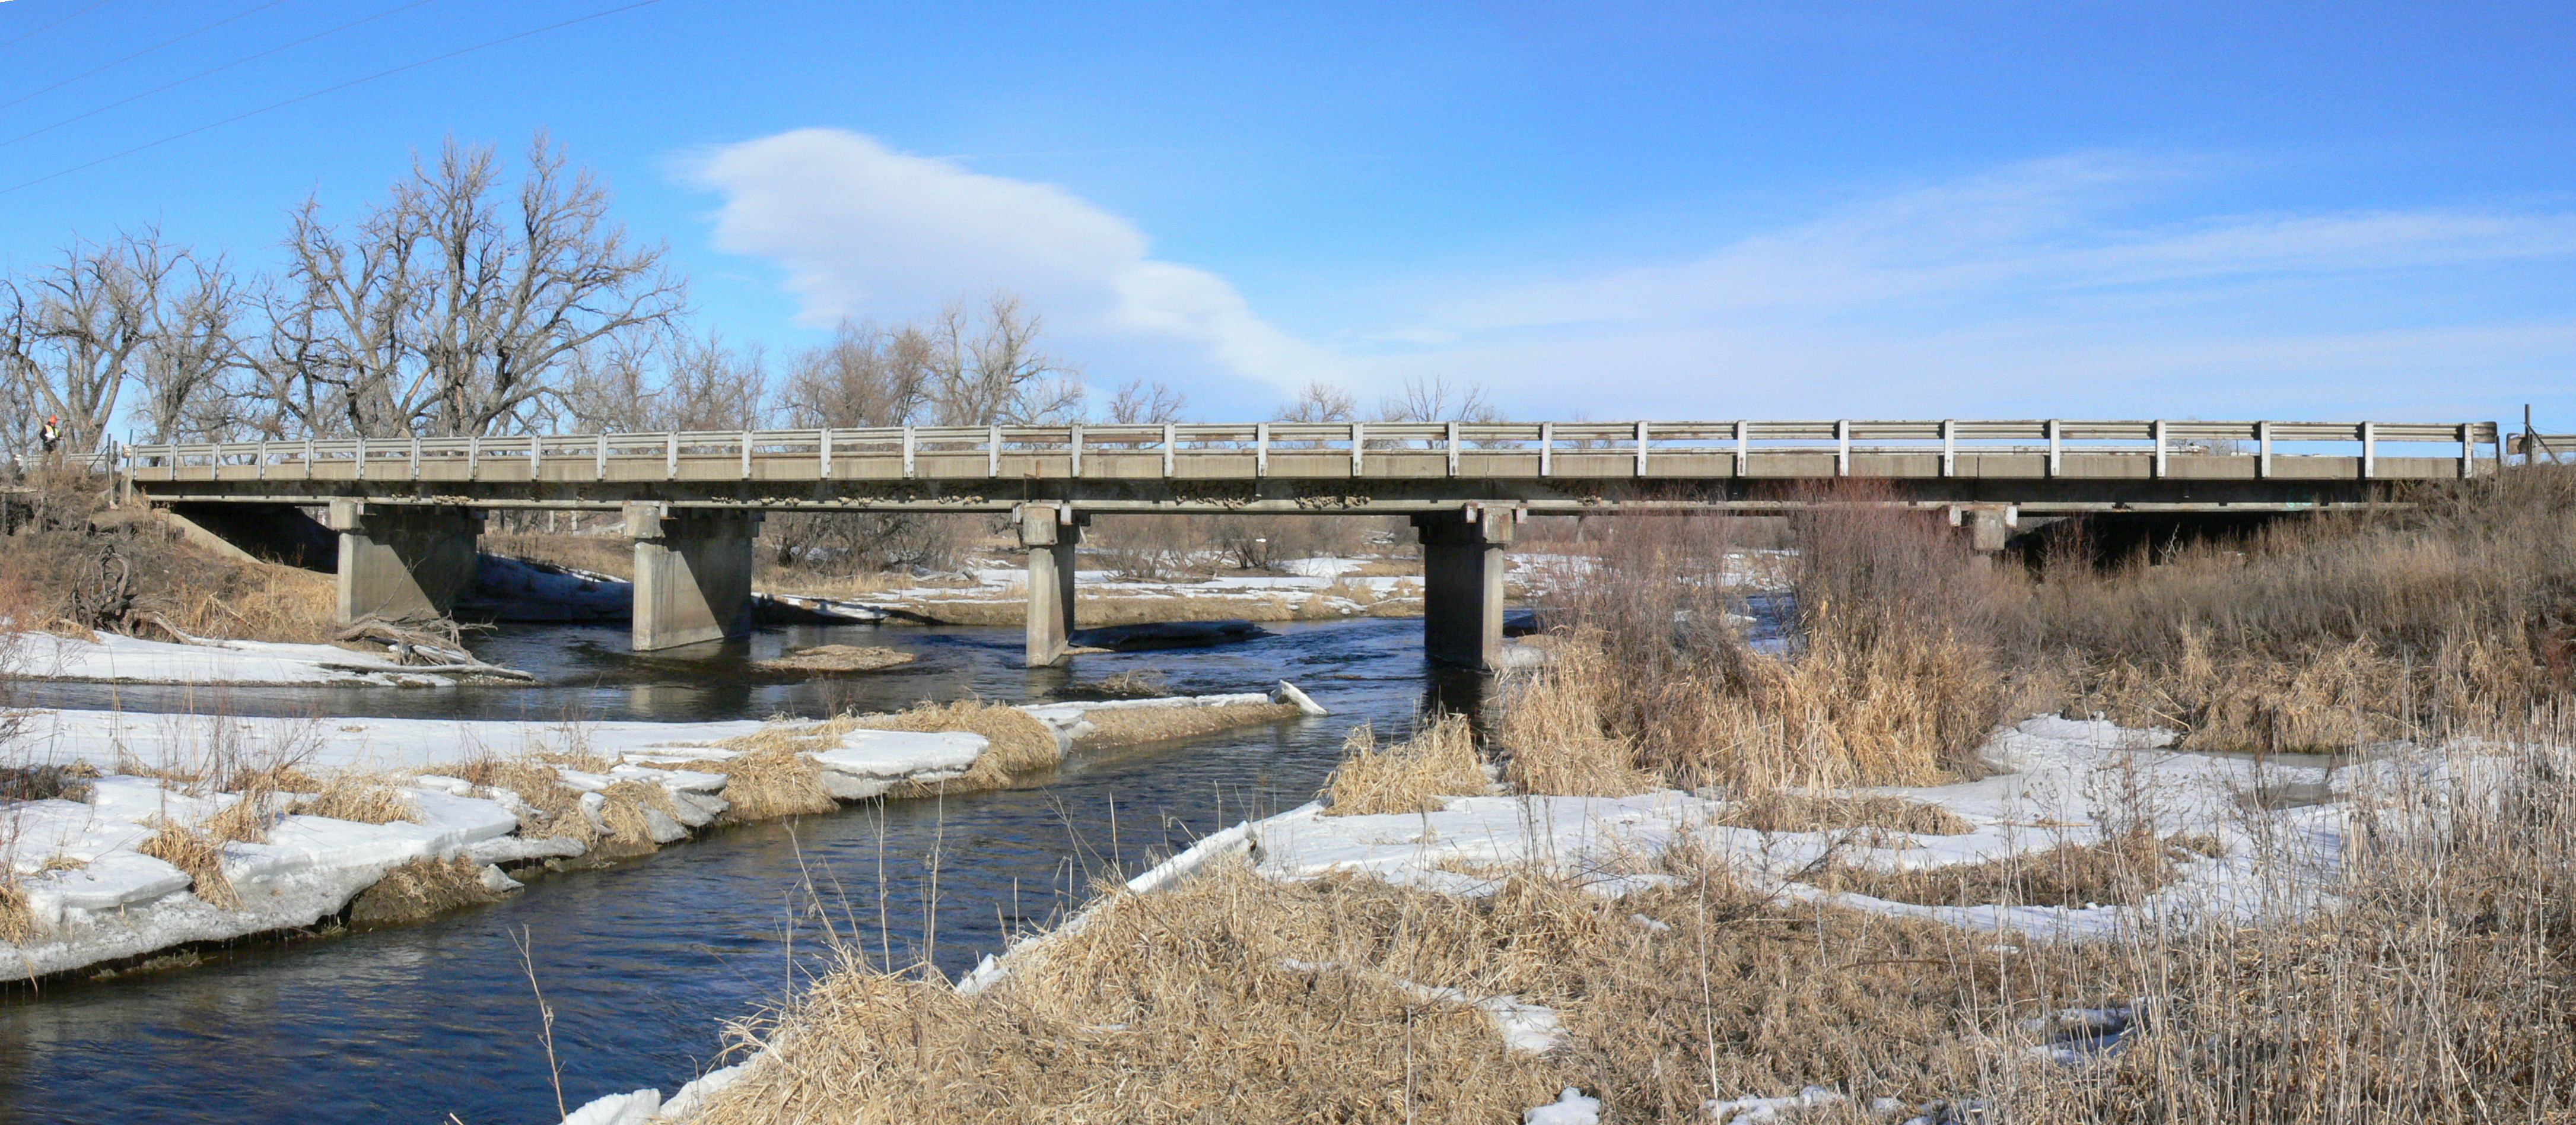 Image result for images of st vrain creek near platteville colorado